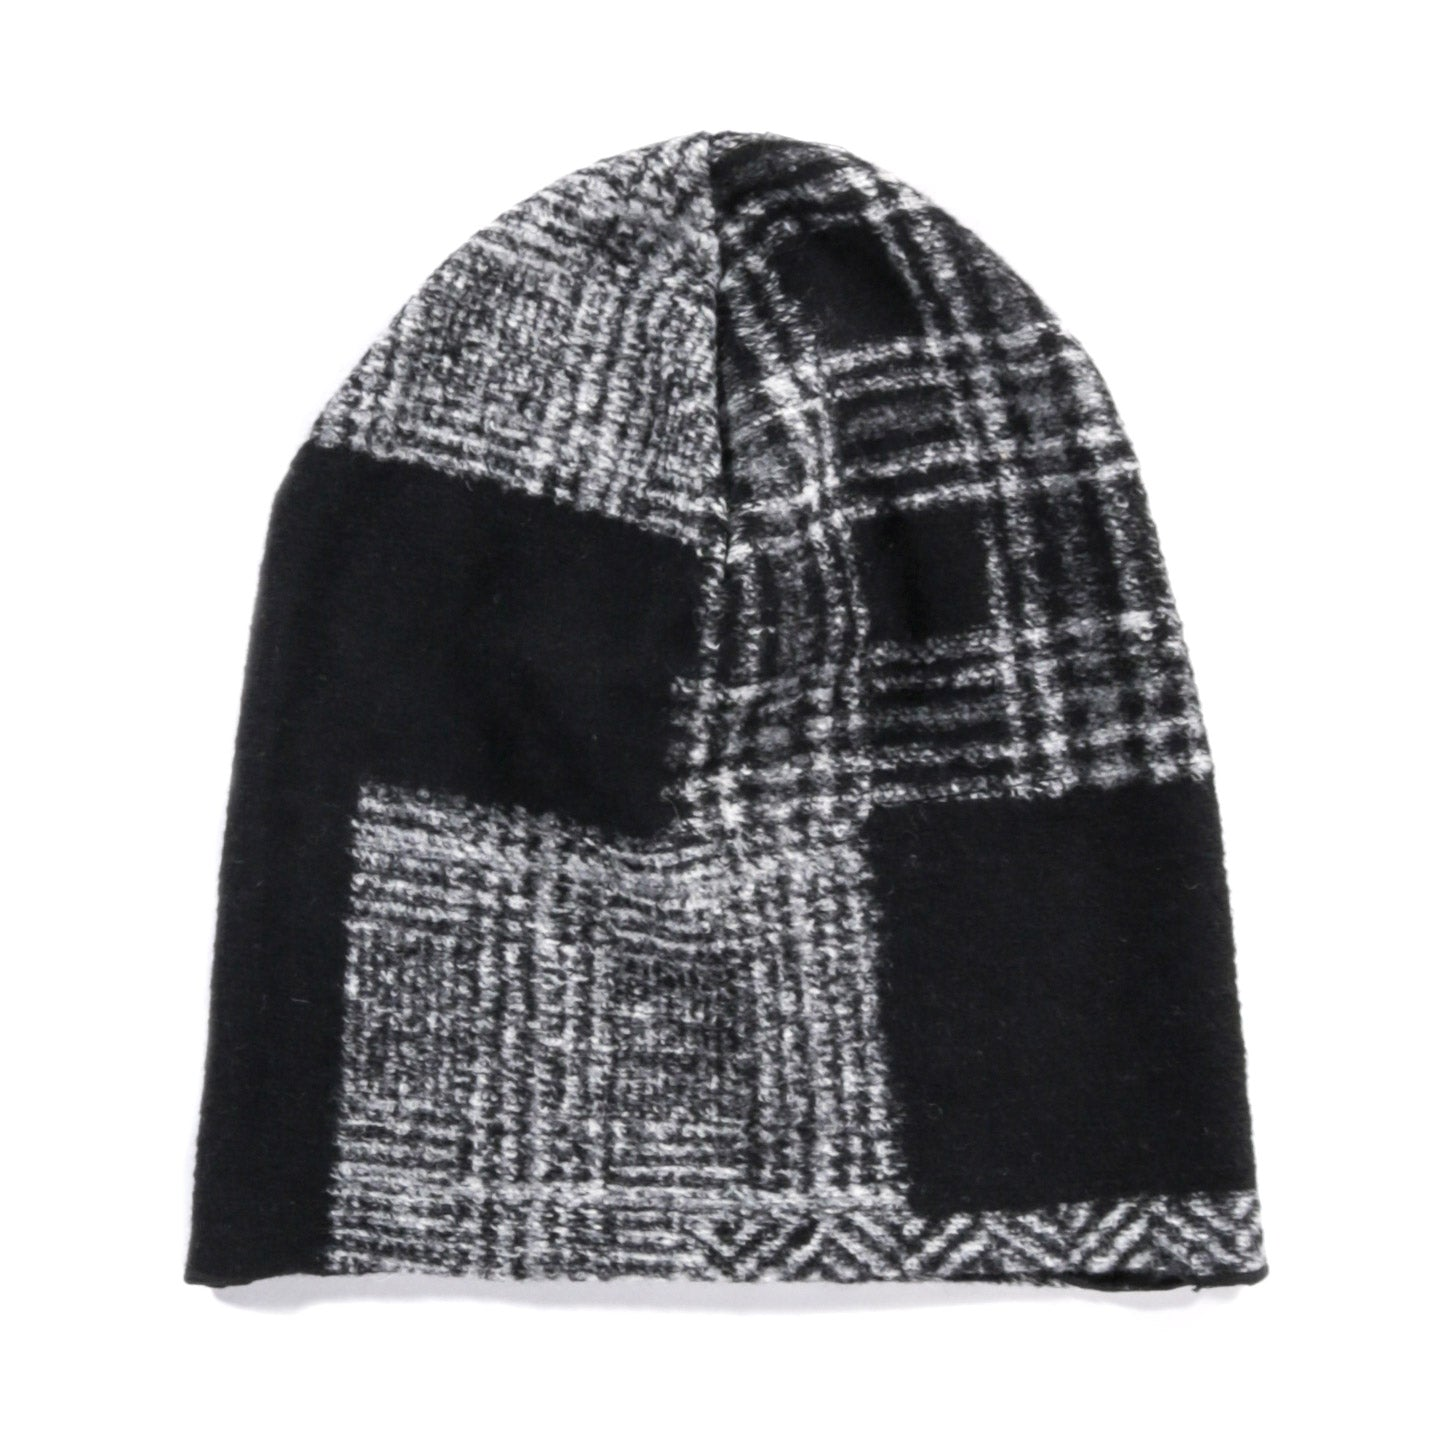 ENGINEERED GARMENTS BEANIE CAP BLACK GREY KNIT PATCHWORK HERRINGBONE